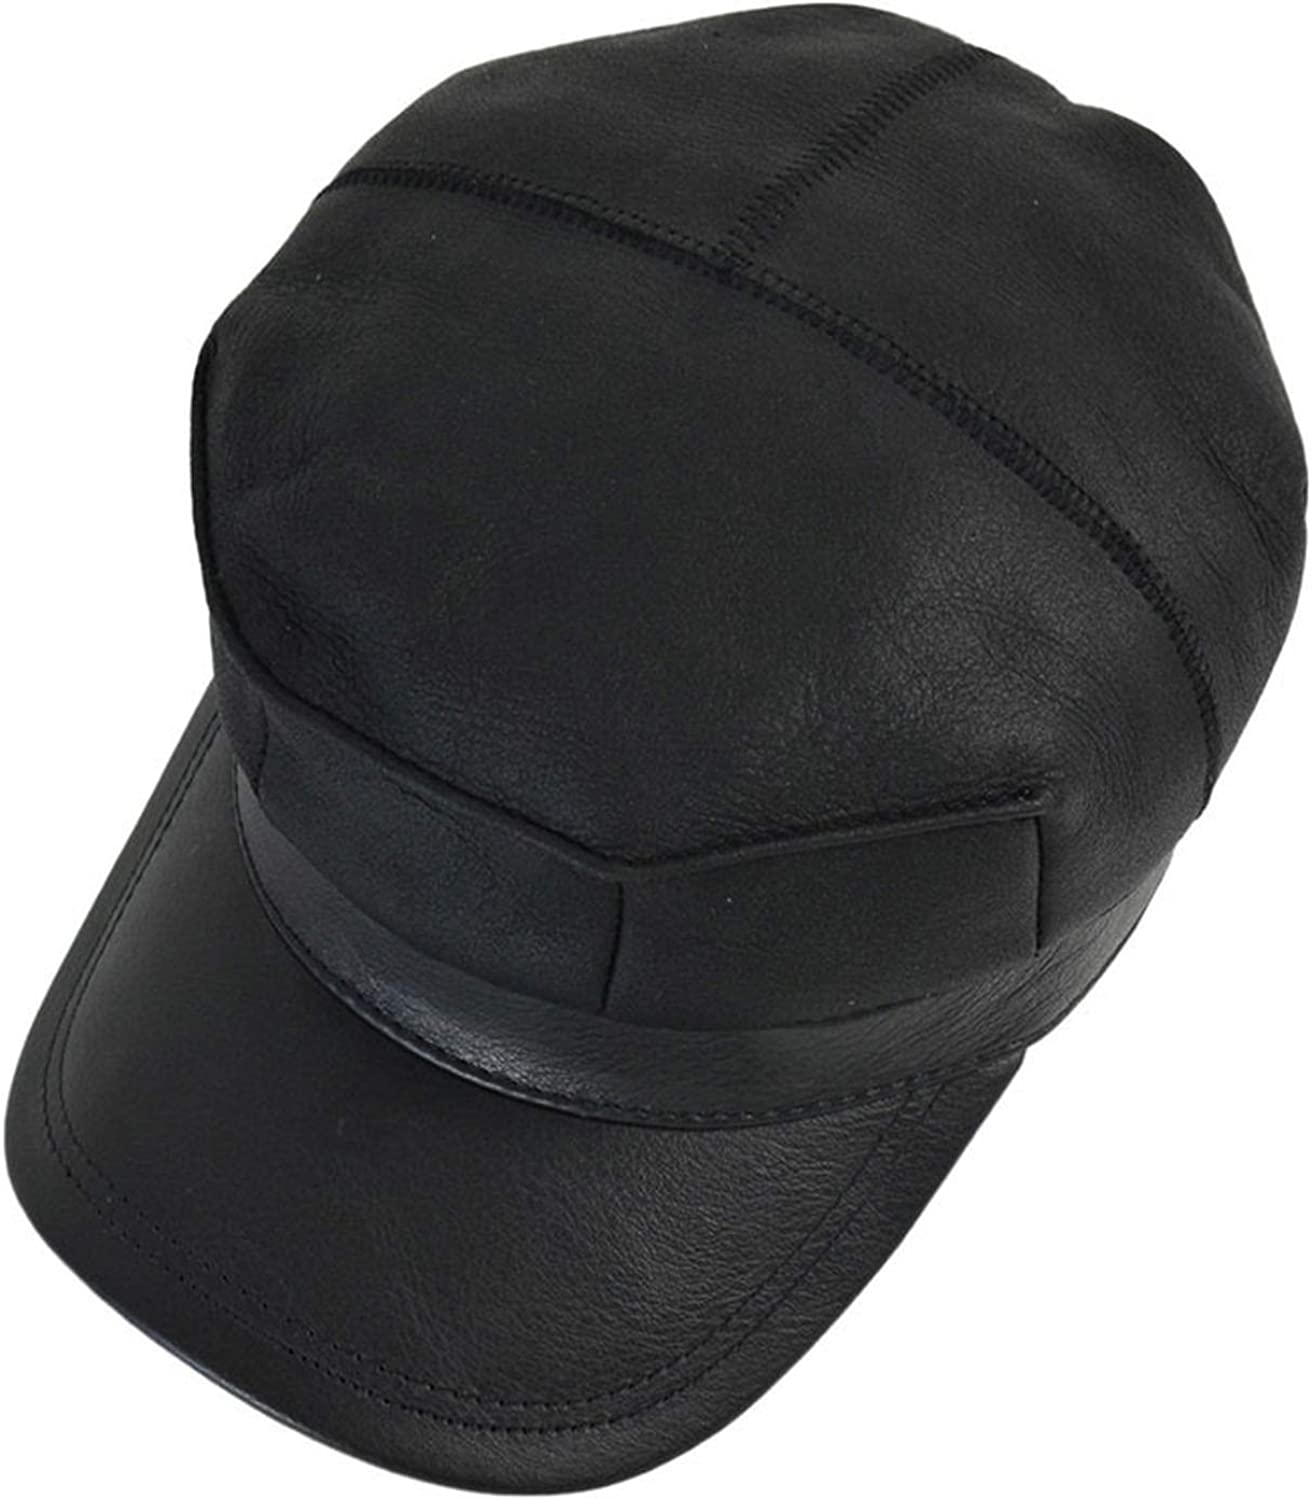 Baseball Cap hat Winter Warm Russian Old Men one Fur Beret Army Ear Flap caps Hats with Real Fur Inside